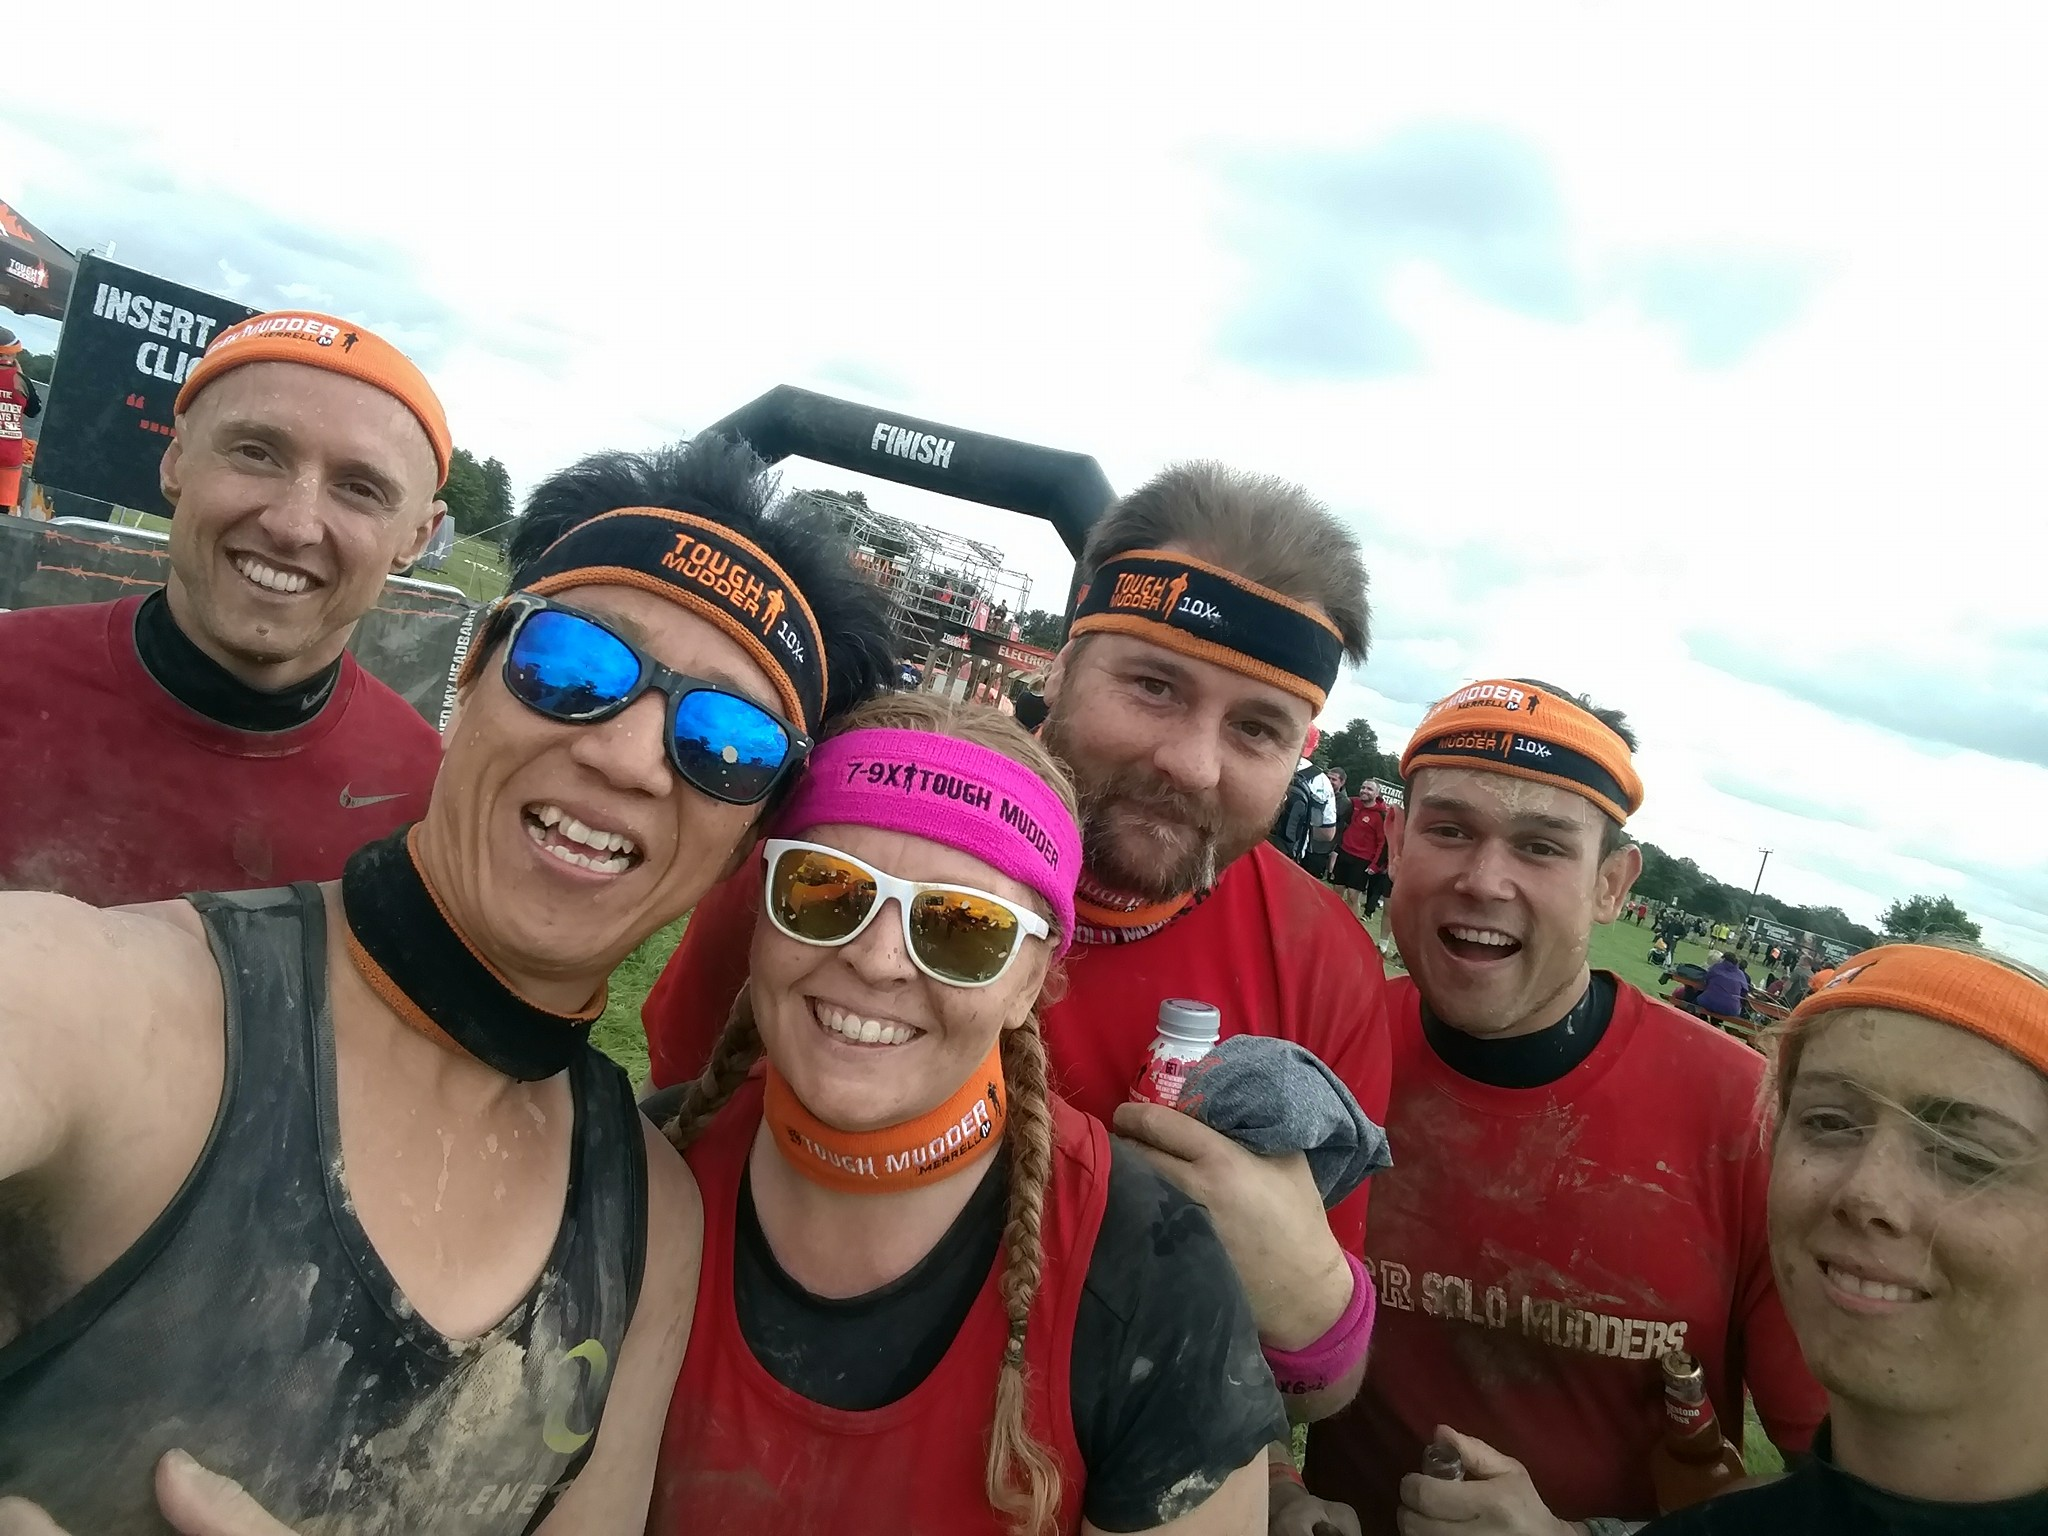 Tough Mudder South West Finish Line Selfie